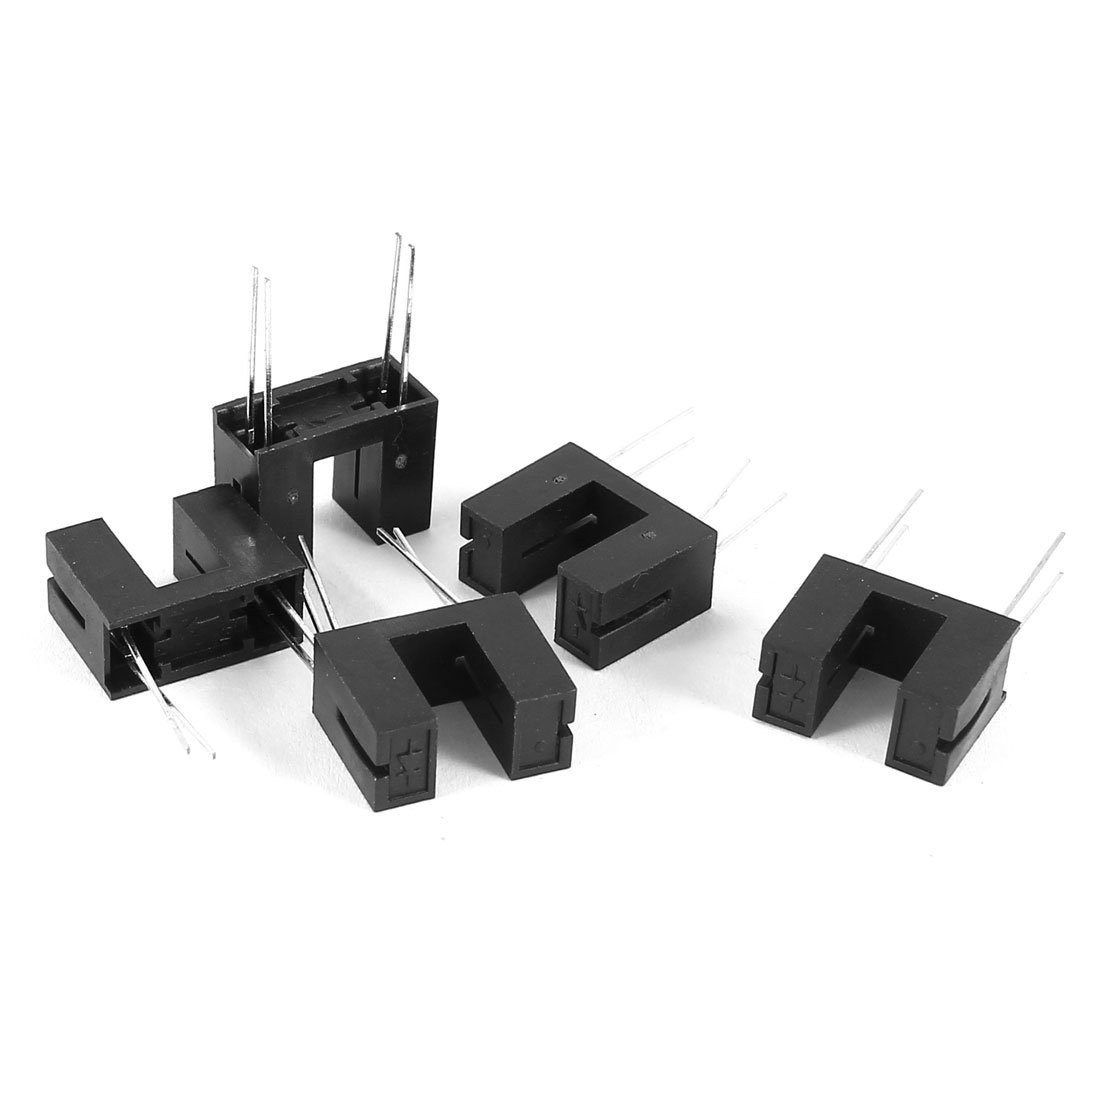 uxcell 5pcs ITR9608 Slotted Reflective Photoelectric Photosensor Opto Switch